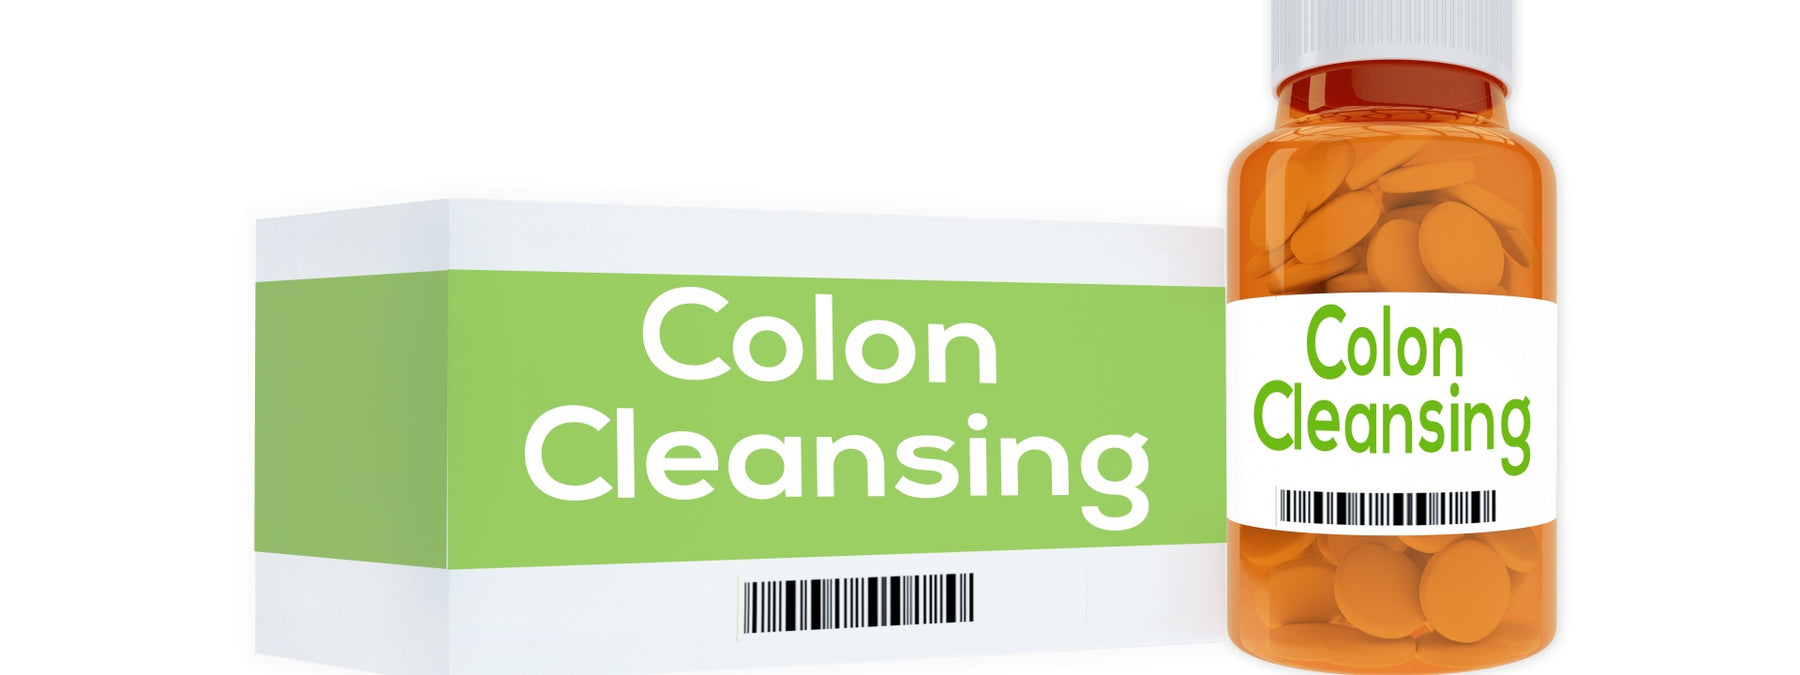 "Colon Cleanse - The Dirty Truth About This ""Healthy"" Practice"